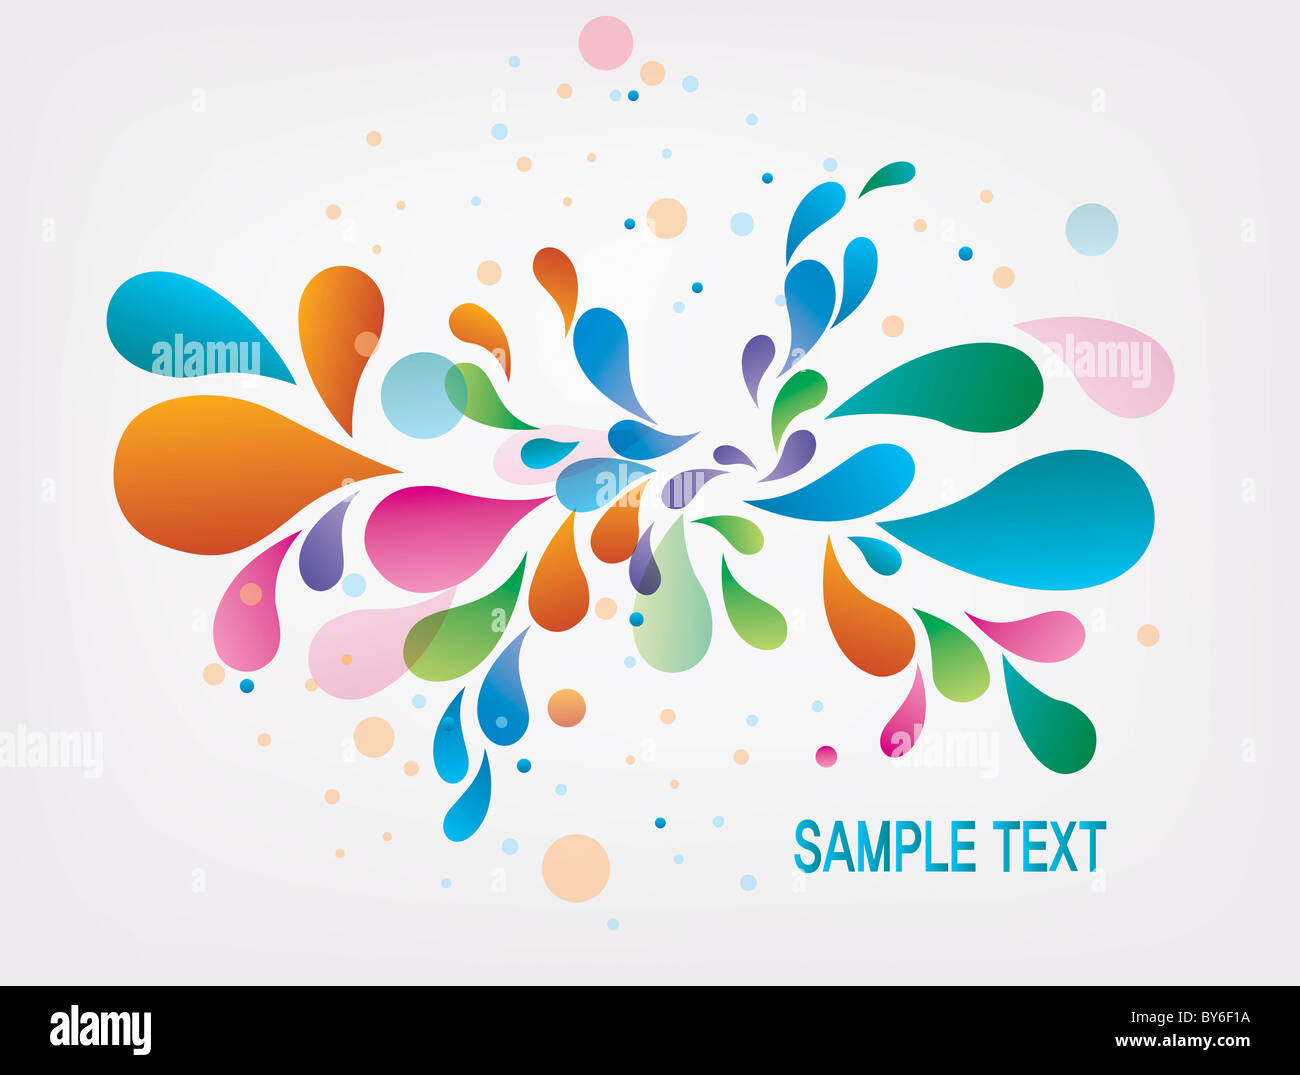 drop shaped illustration background - Stock Image